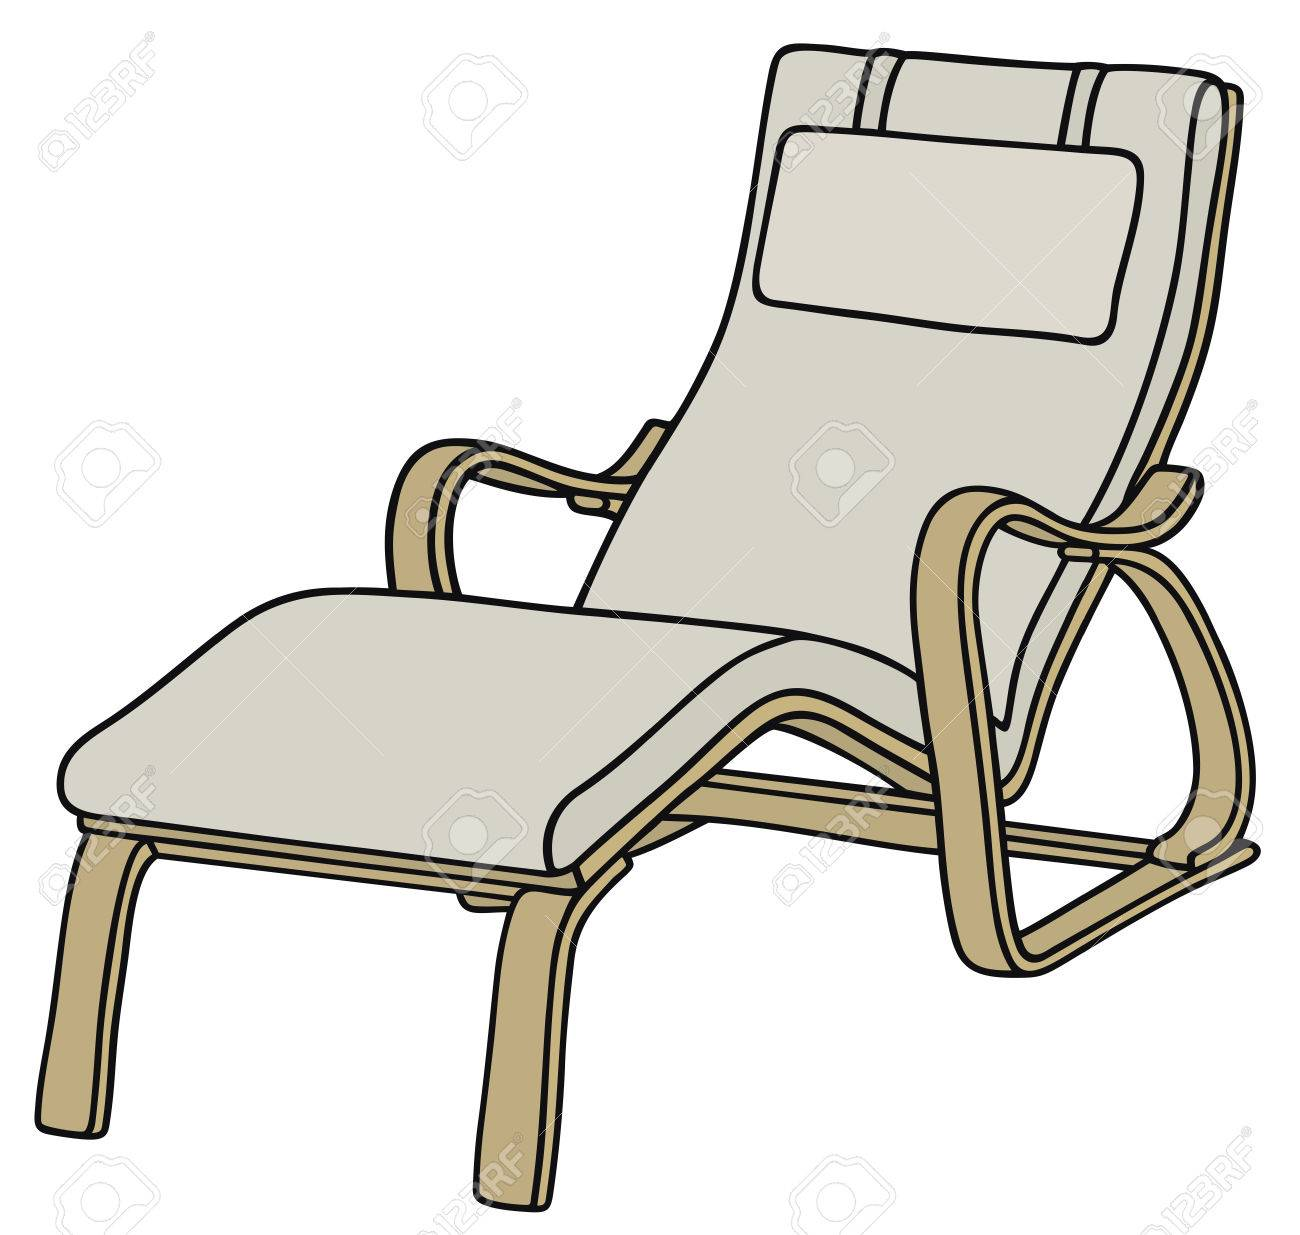 1300x1235 Hand Drawing Of A Relaxation Armchair Royalty Free Cliparts